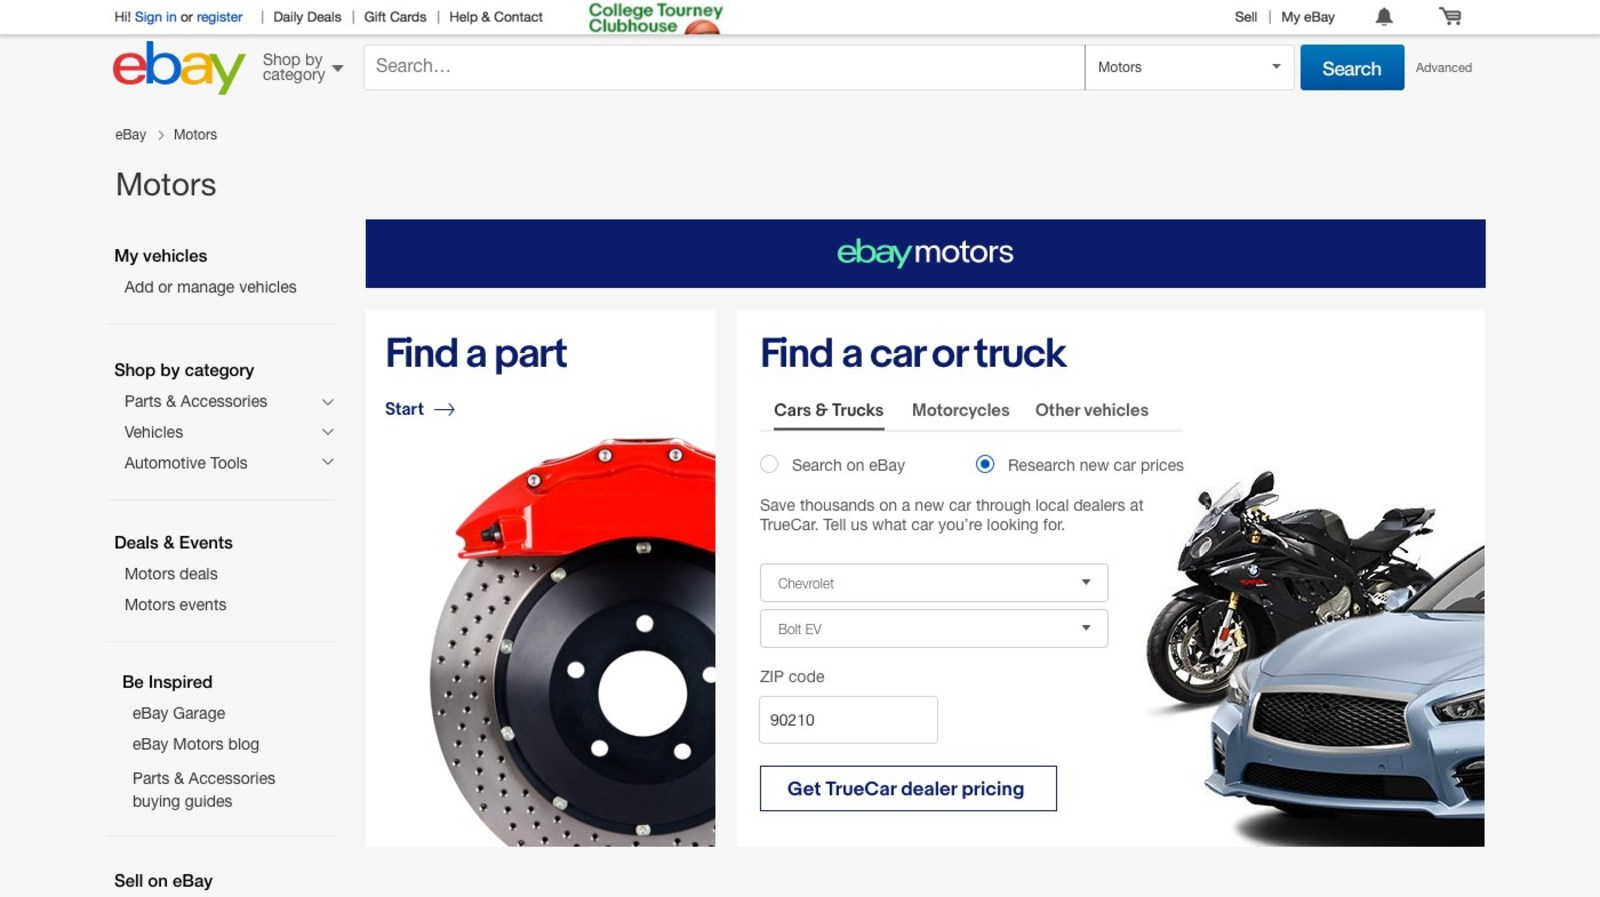 eBay France partners with Feu Vert to fit tyres bought online